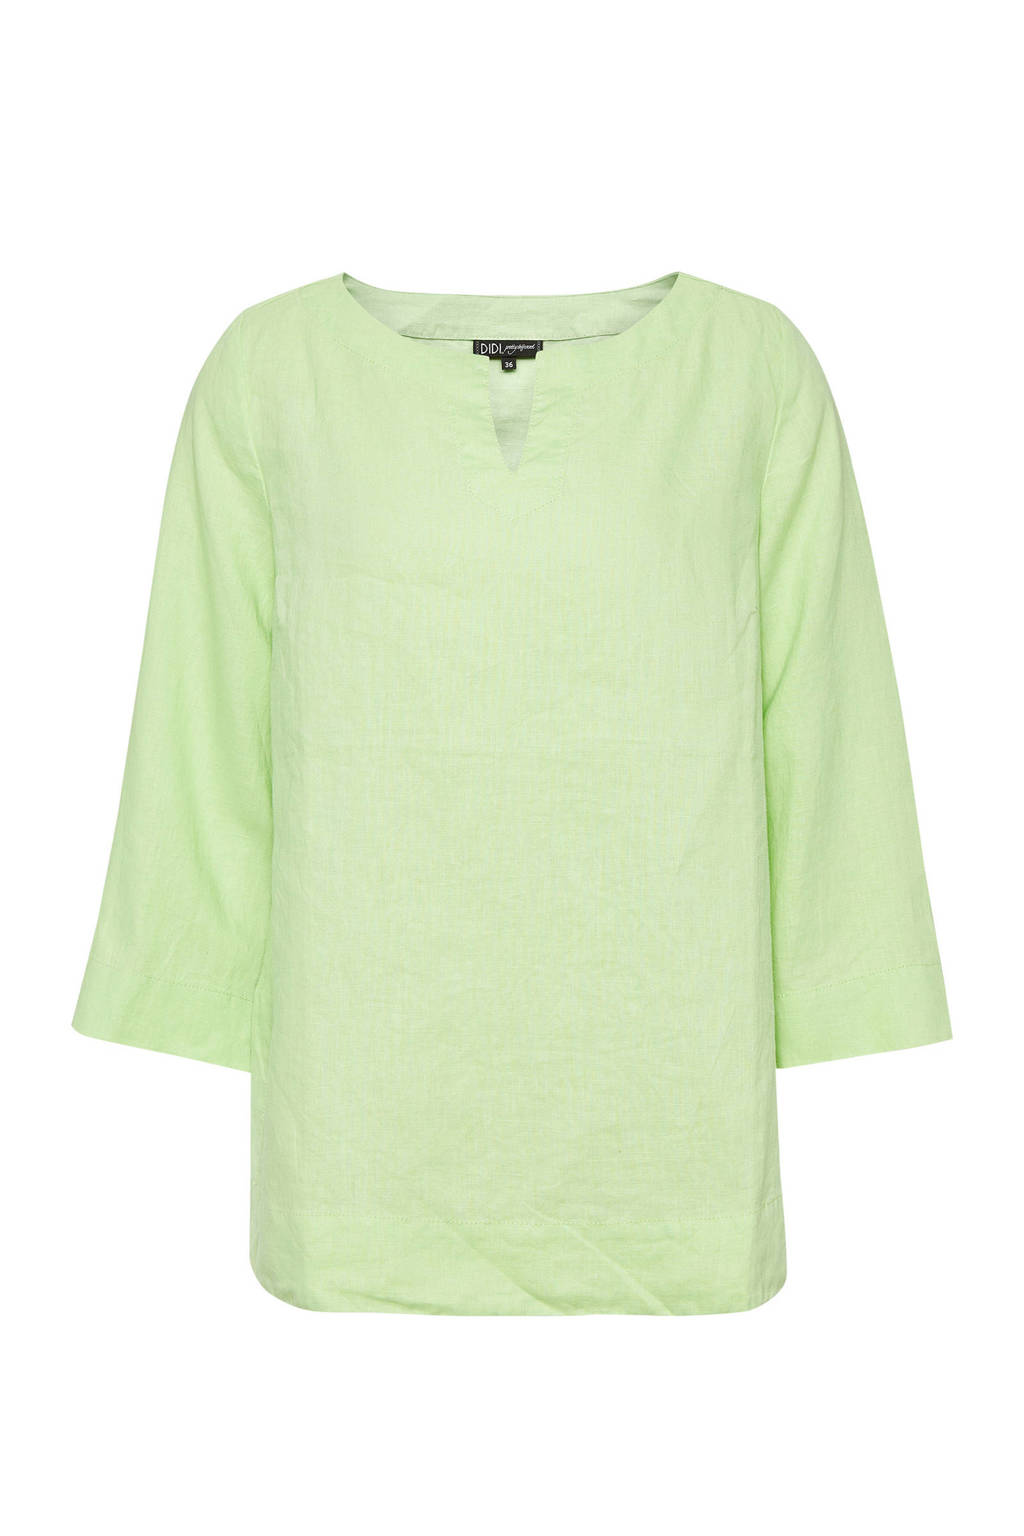 Didi loose fit top, Mintgroen